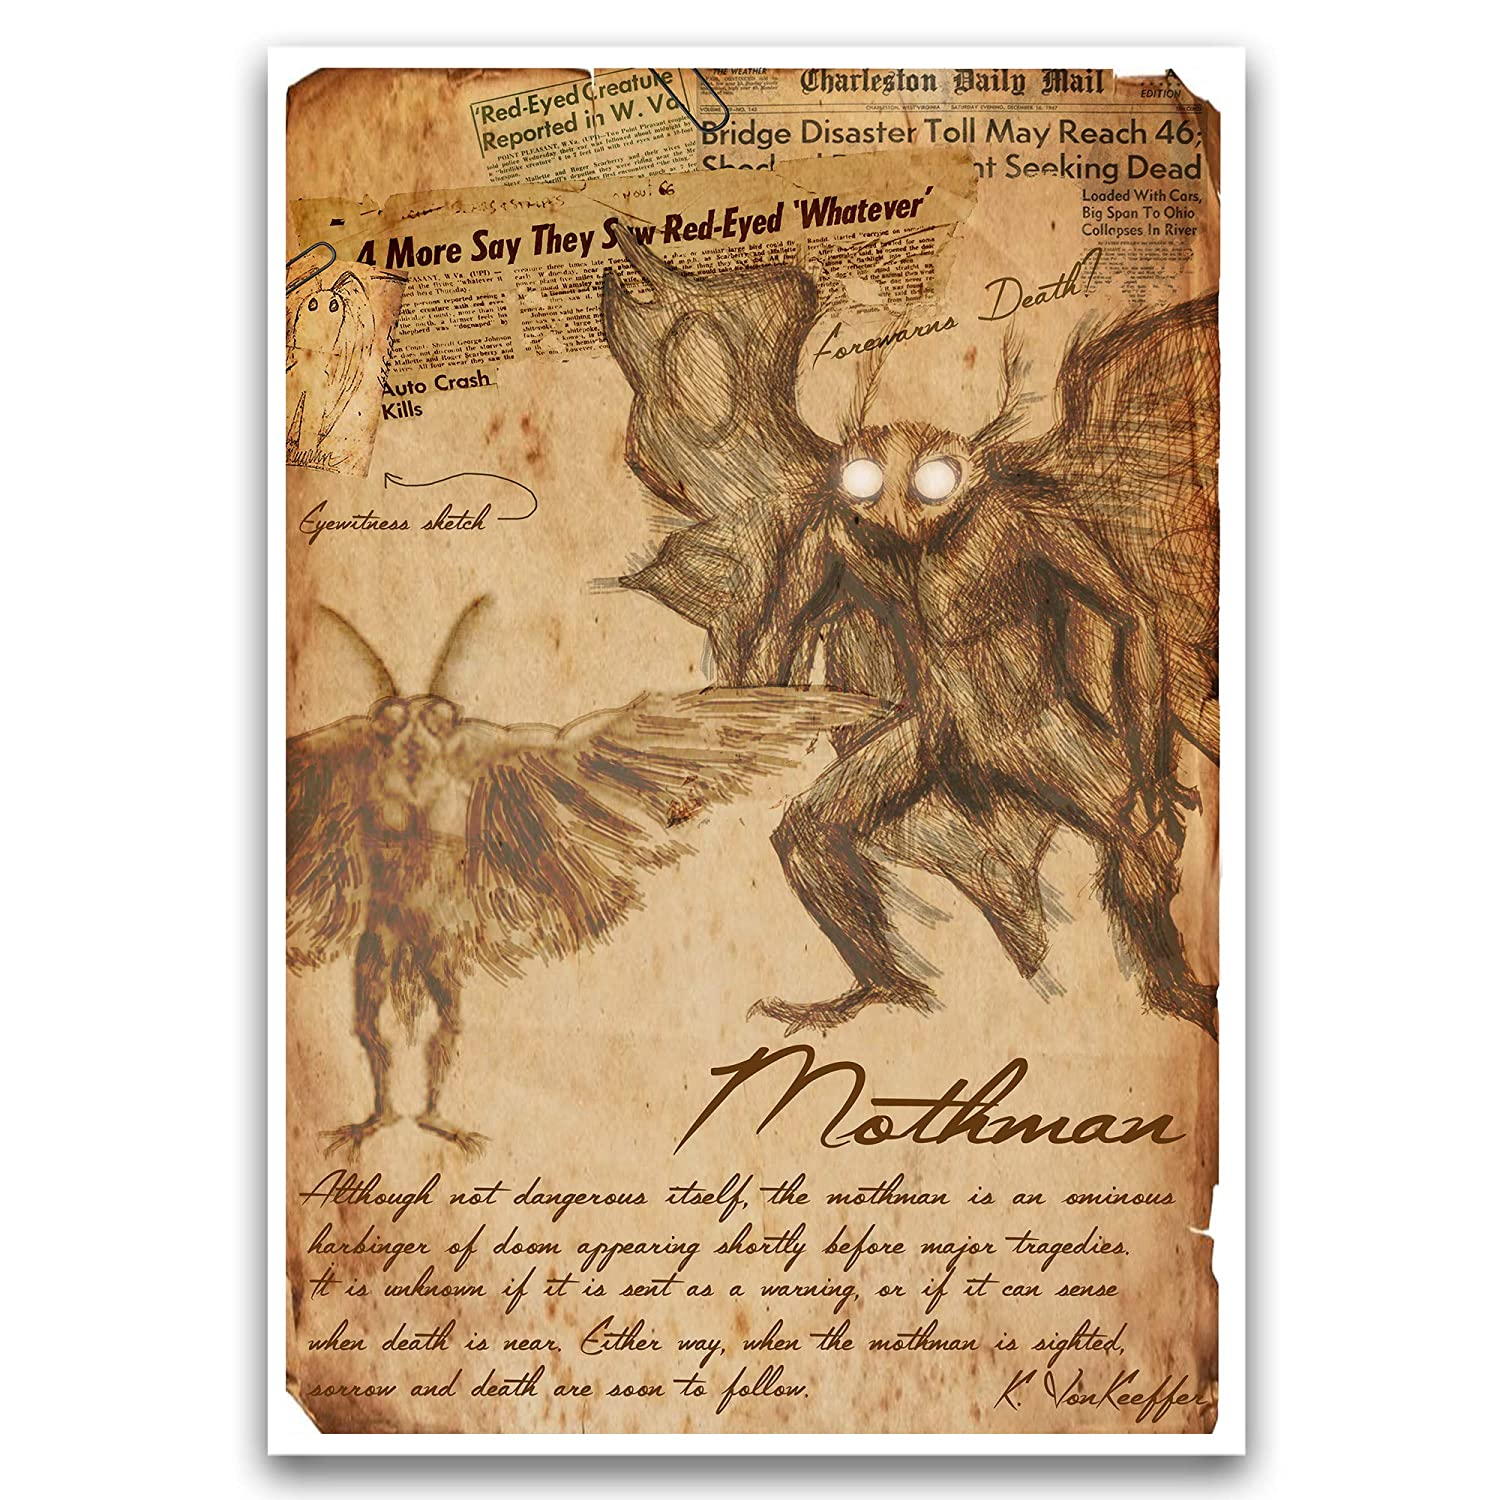 Mothman Limited time cheap sale urban legend art print and folklore cry Now free shipping monsters myths